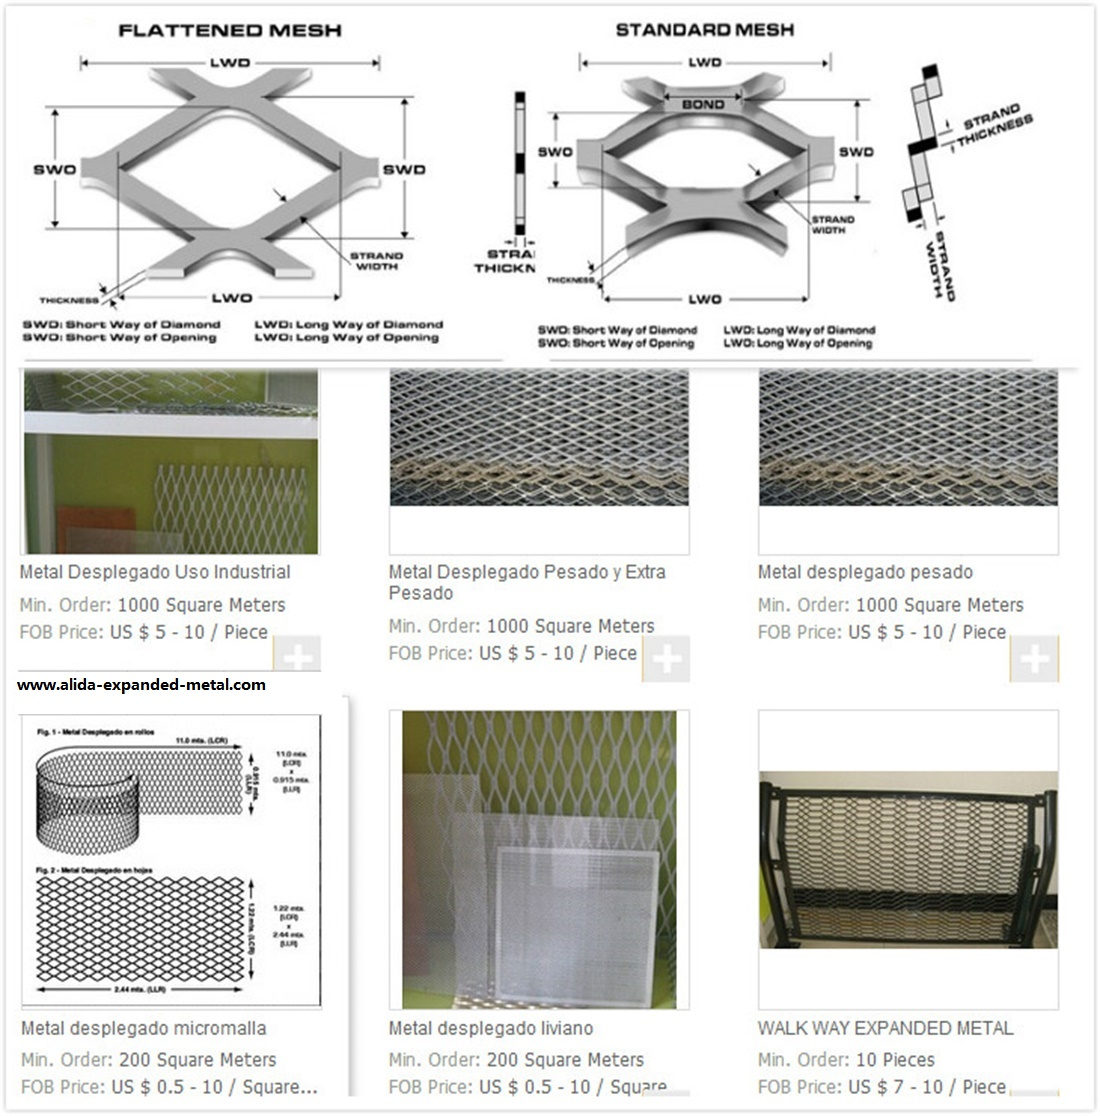 Expanded Metal Mesh drawing and price